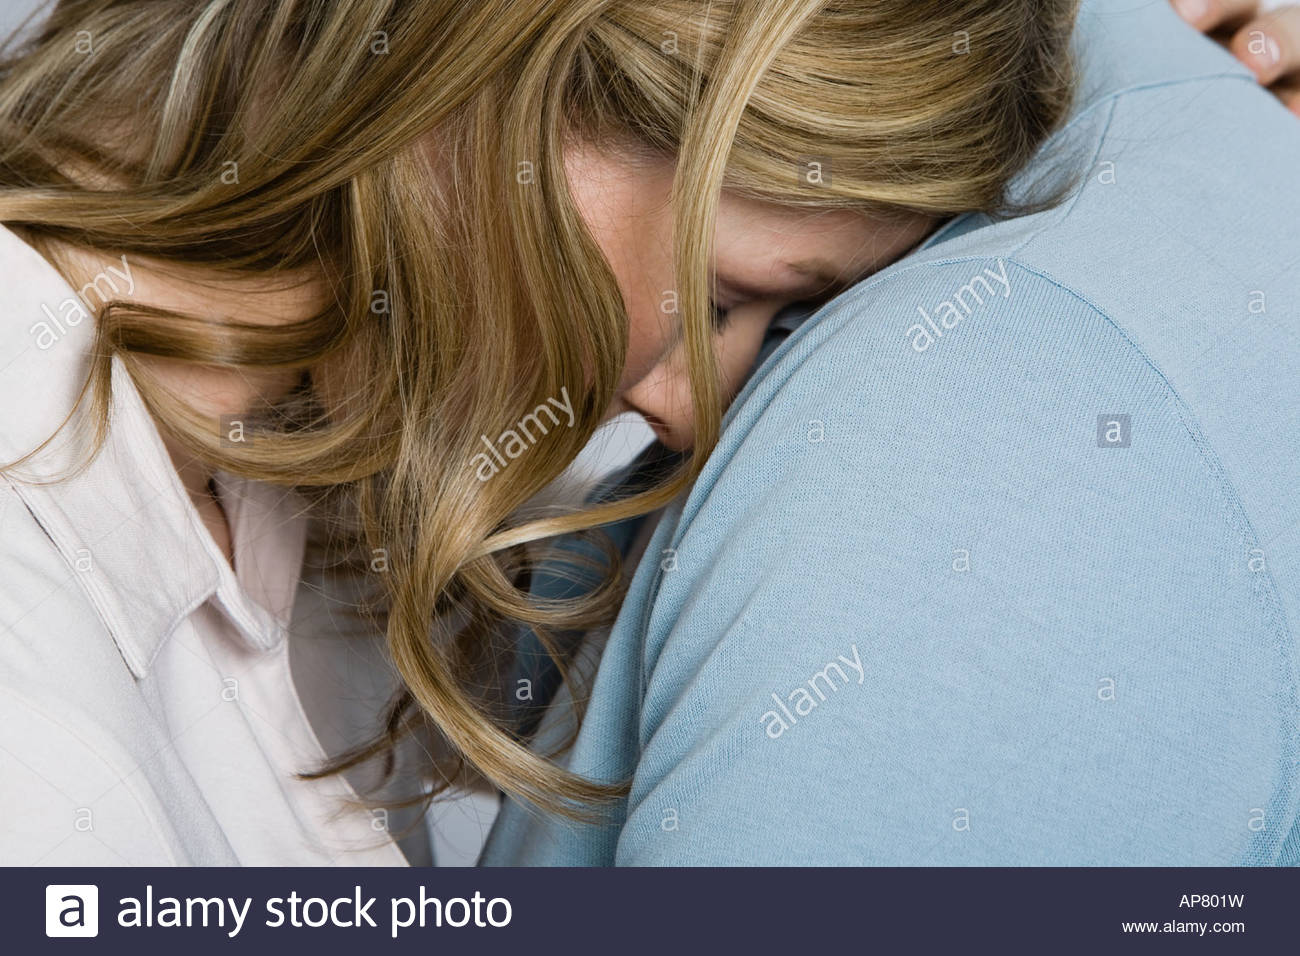 Woman being consoled - Stock Image